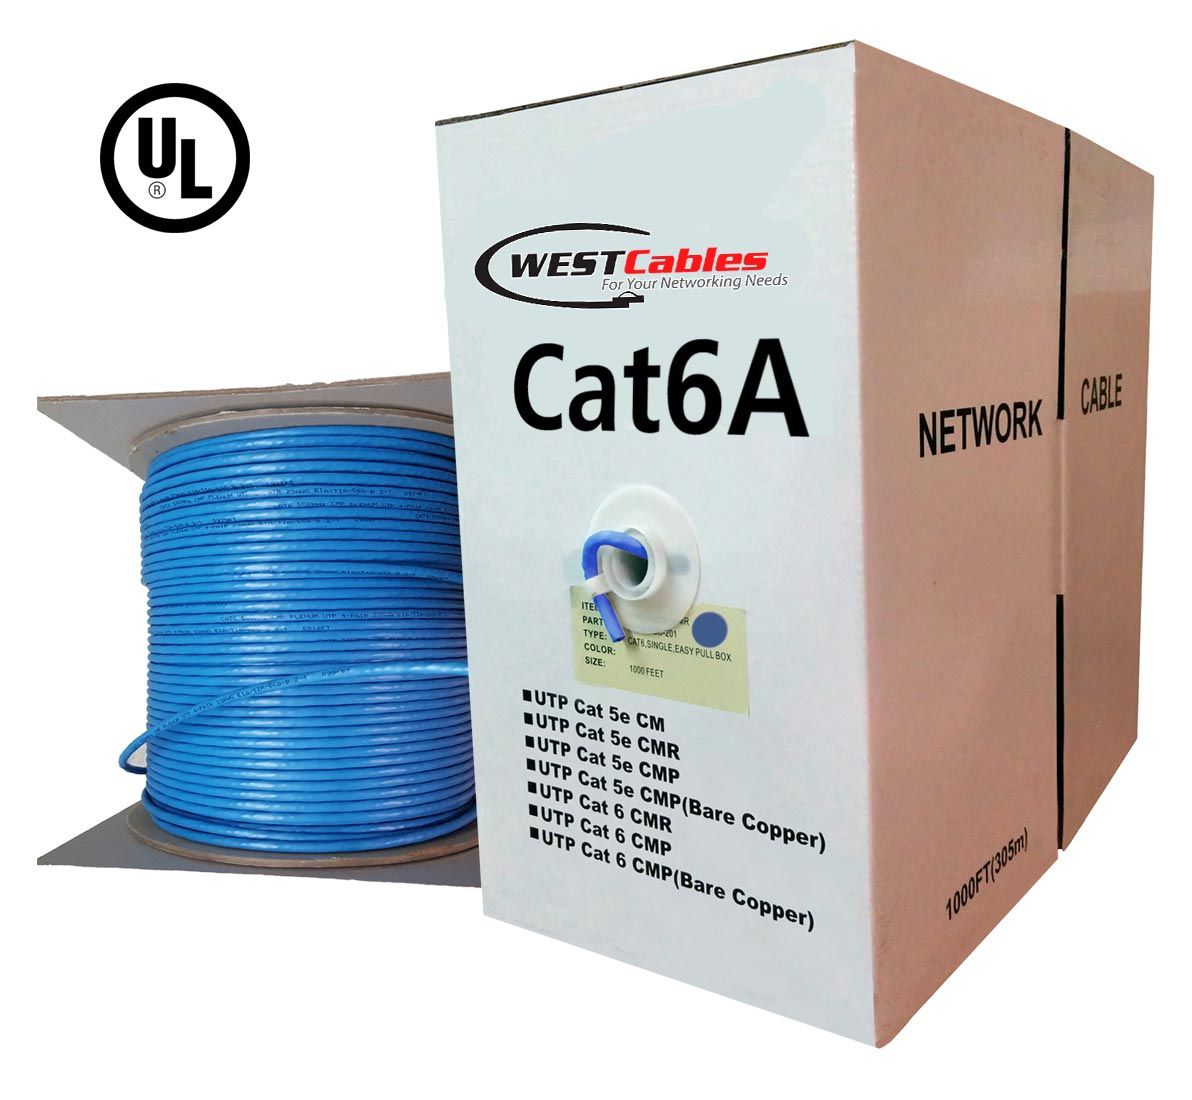 cat 6 wiring diagram riser 1000ft cat6a riser cmr solid copper ul listed network cable  cat6a riser cmr solid copper ul listed